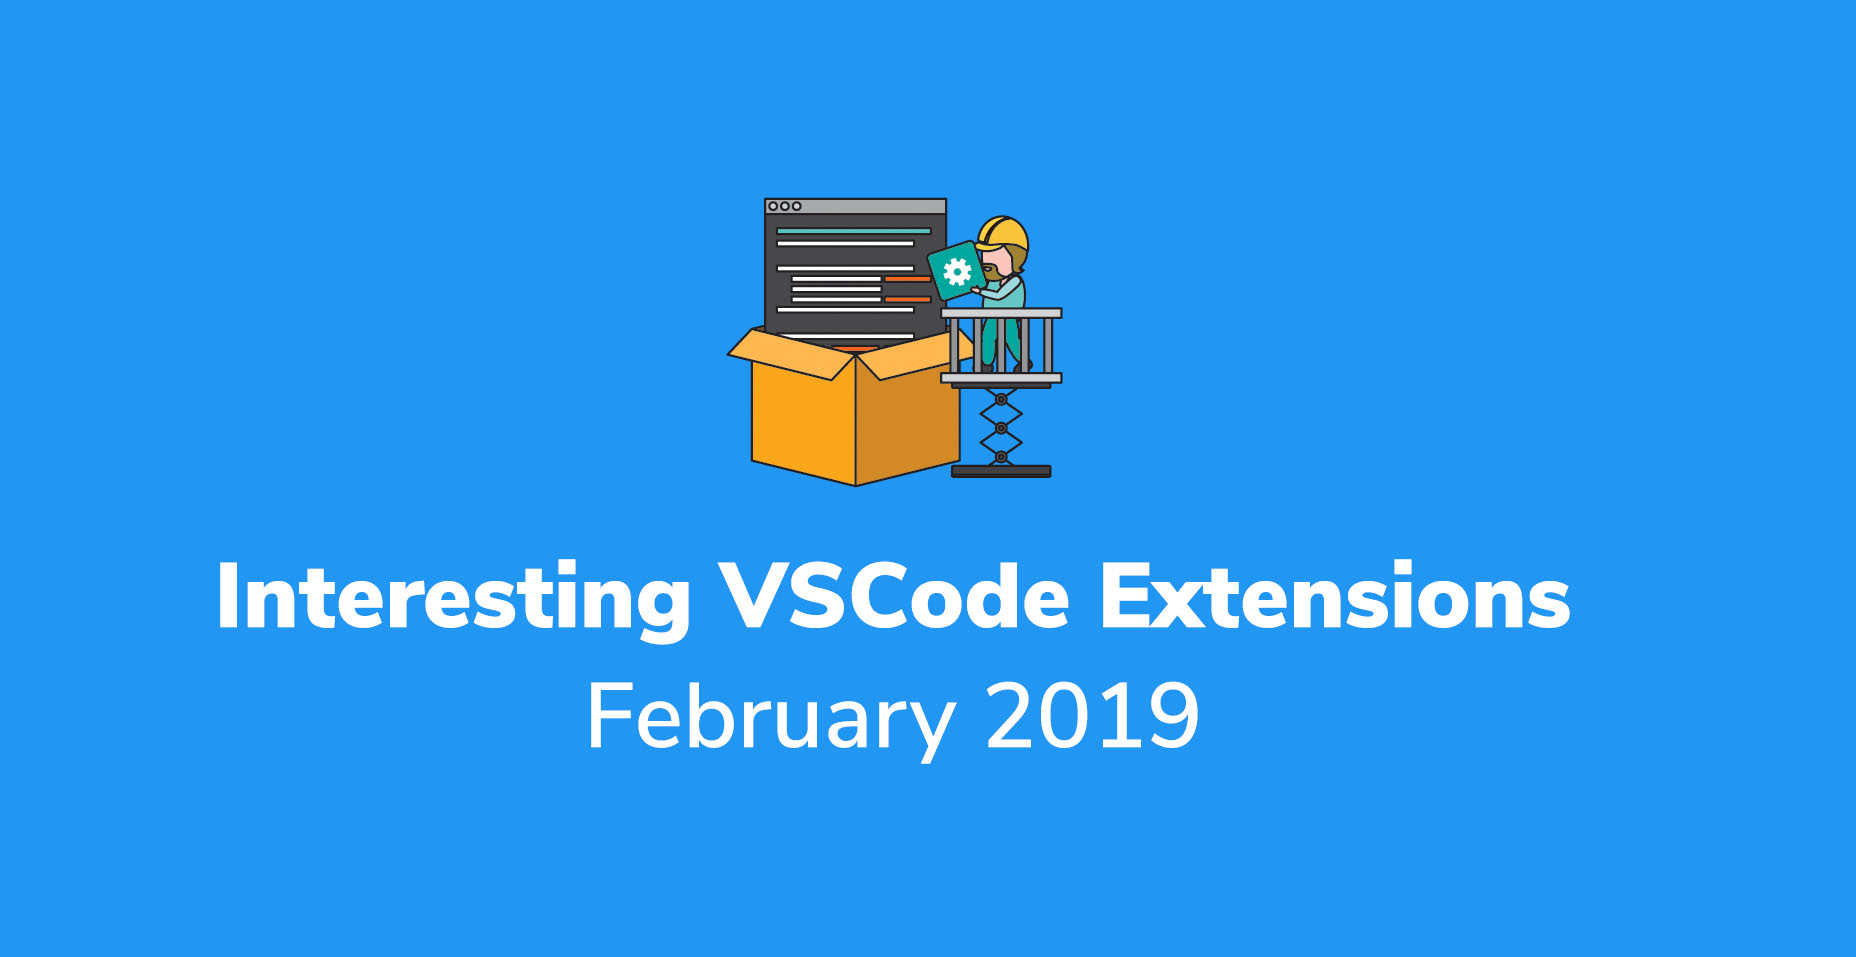 Interesting VSCode Extensions For February 2019 | Code Wall